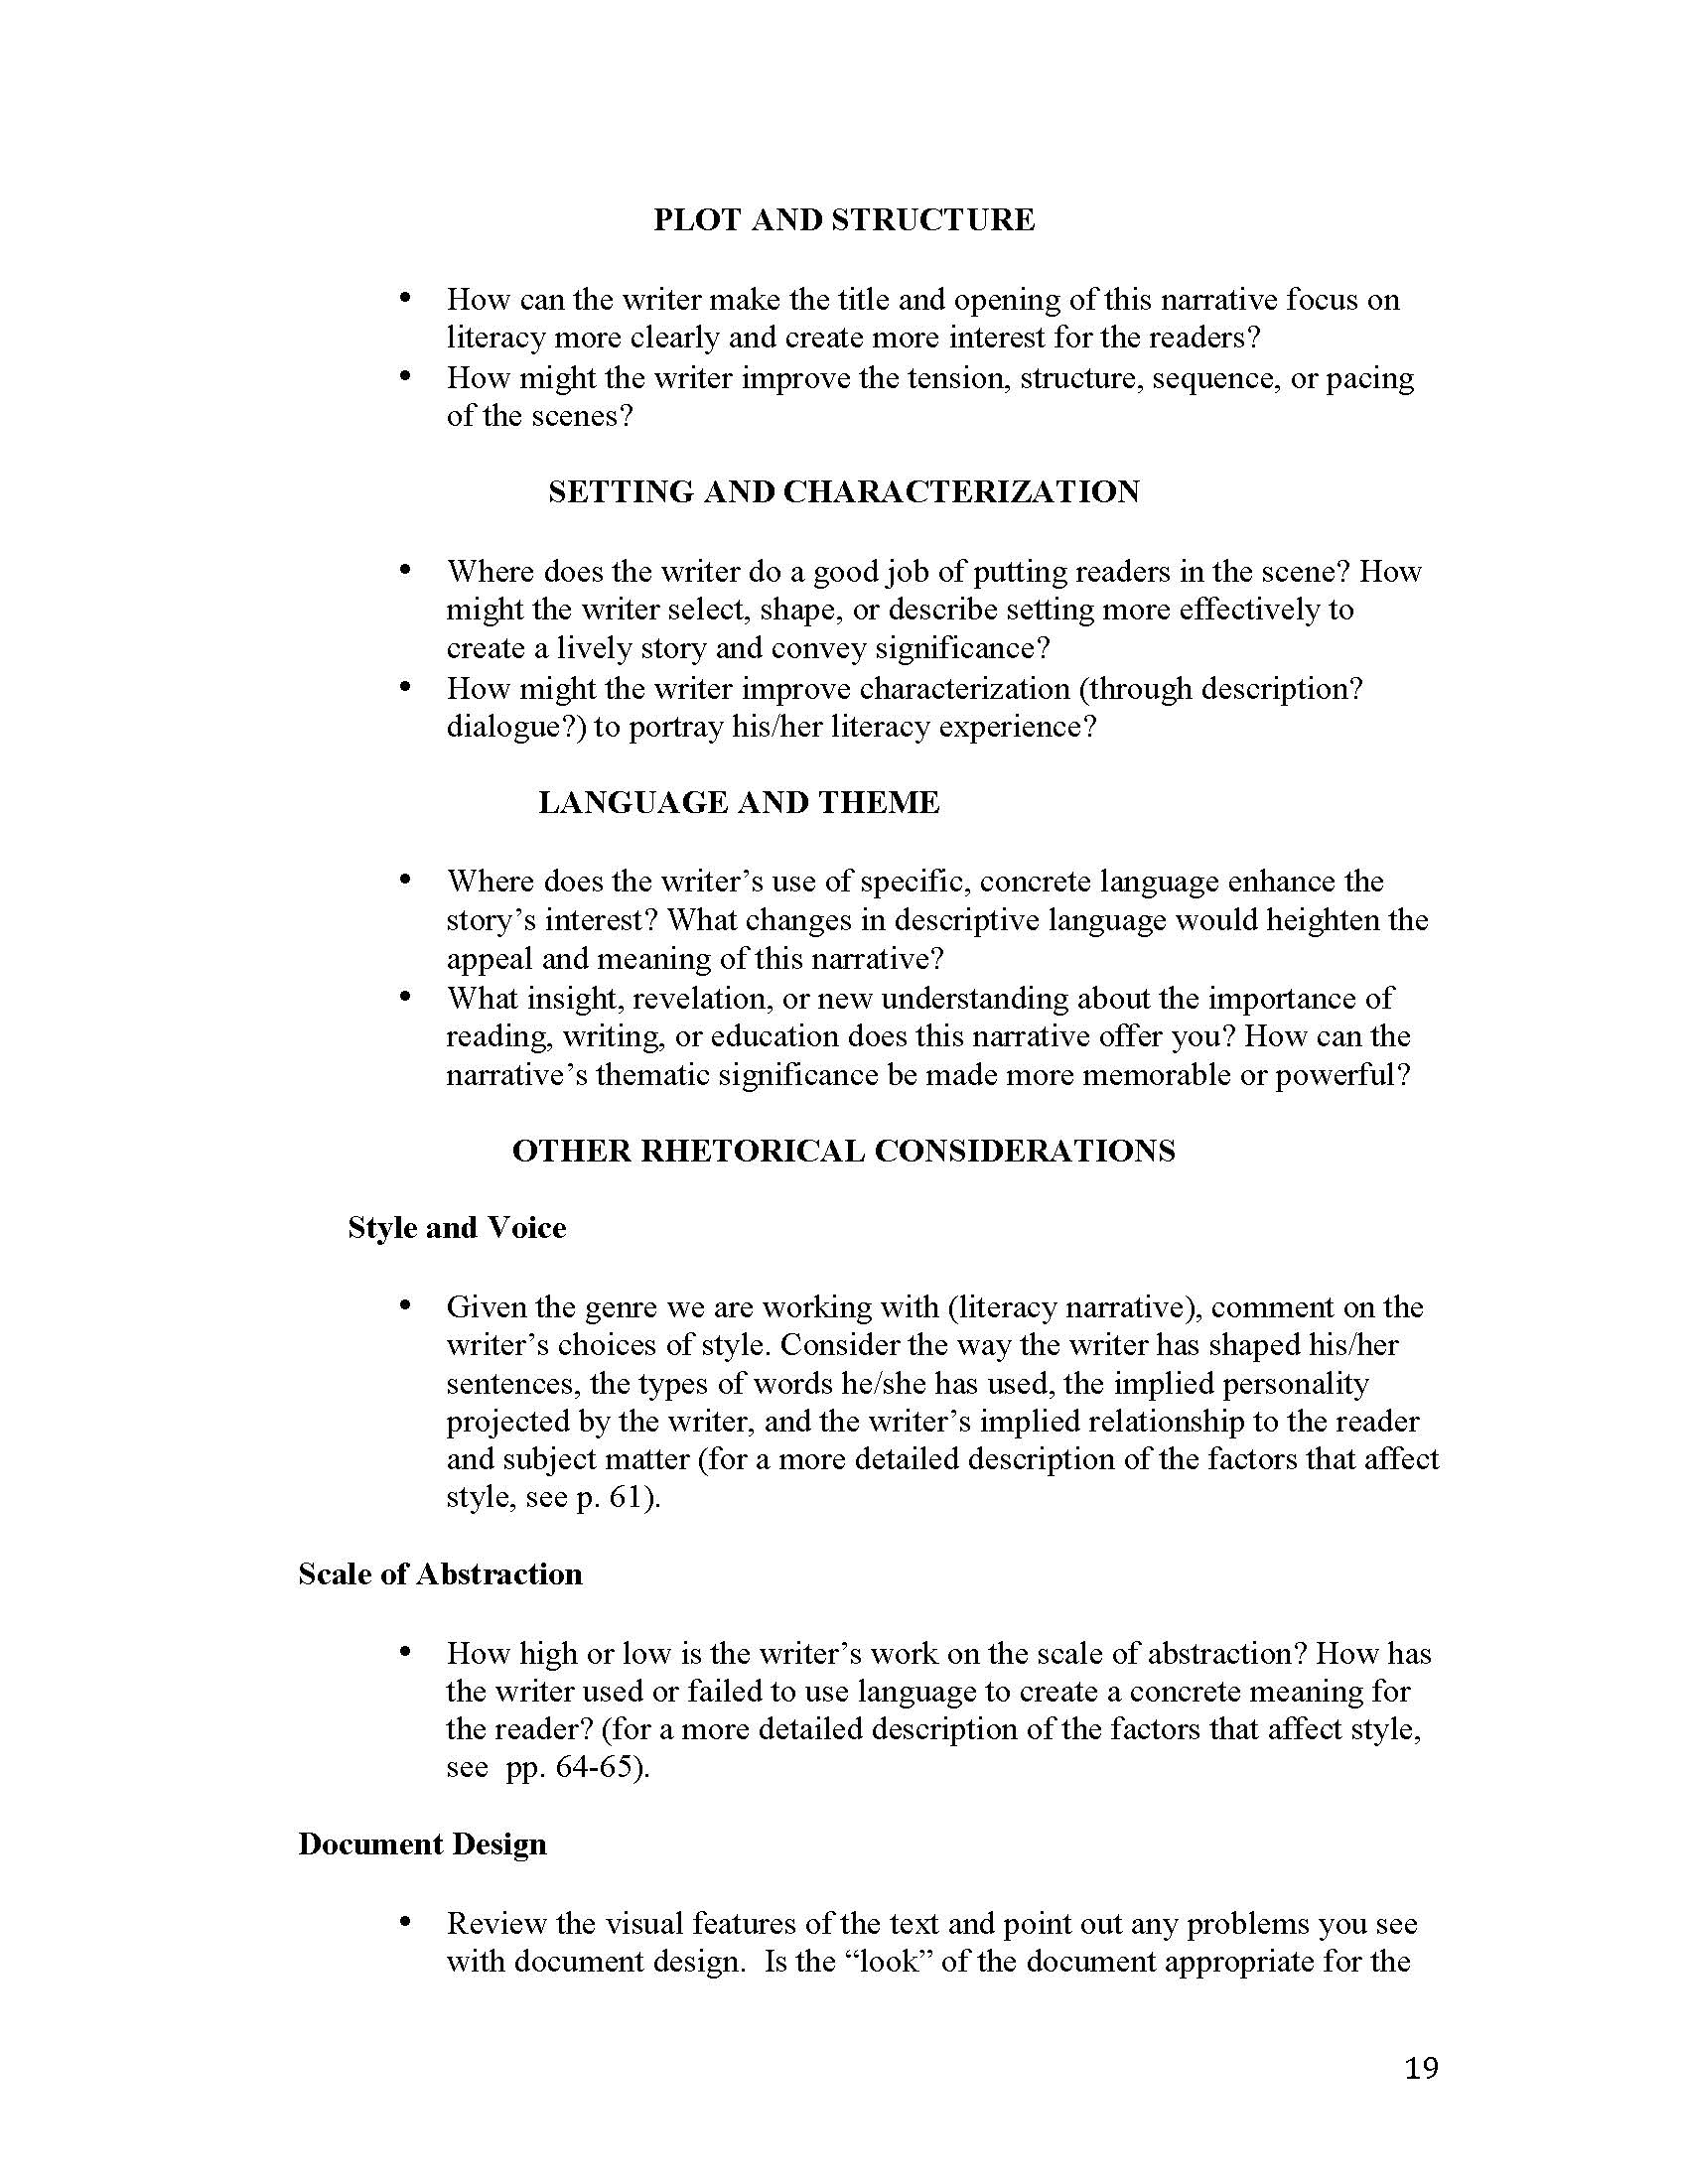 013 Immigration Essays Samples Unit 1 Literacy Narrative Instructor Copy Page 19 Essay Rare Full